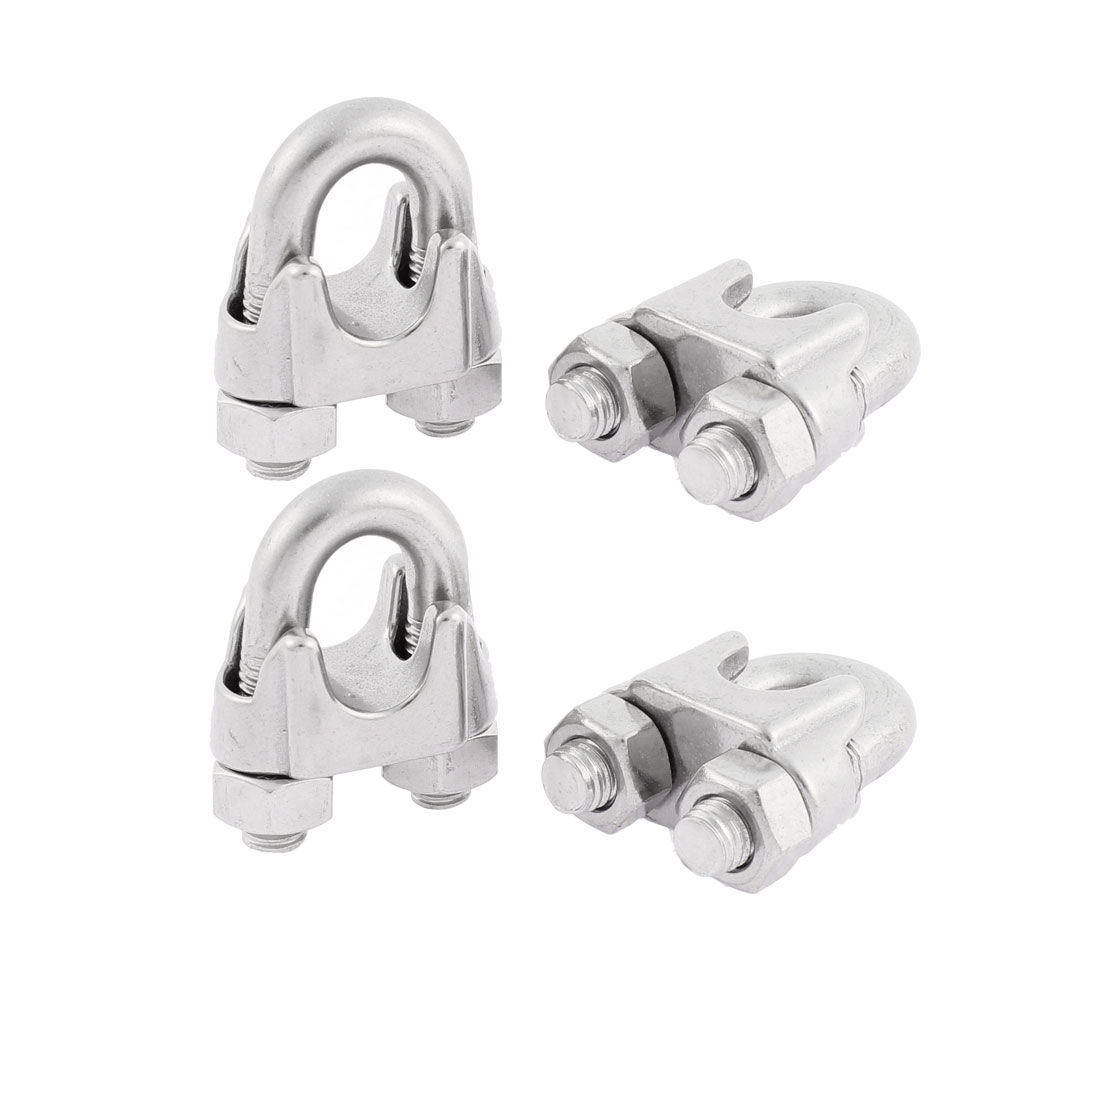 M12 Single Saddle Screwed Wire Rope Cable Clips Clamps 4pcs